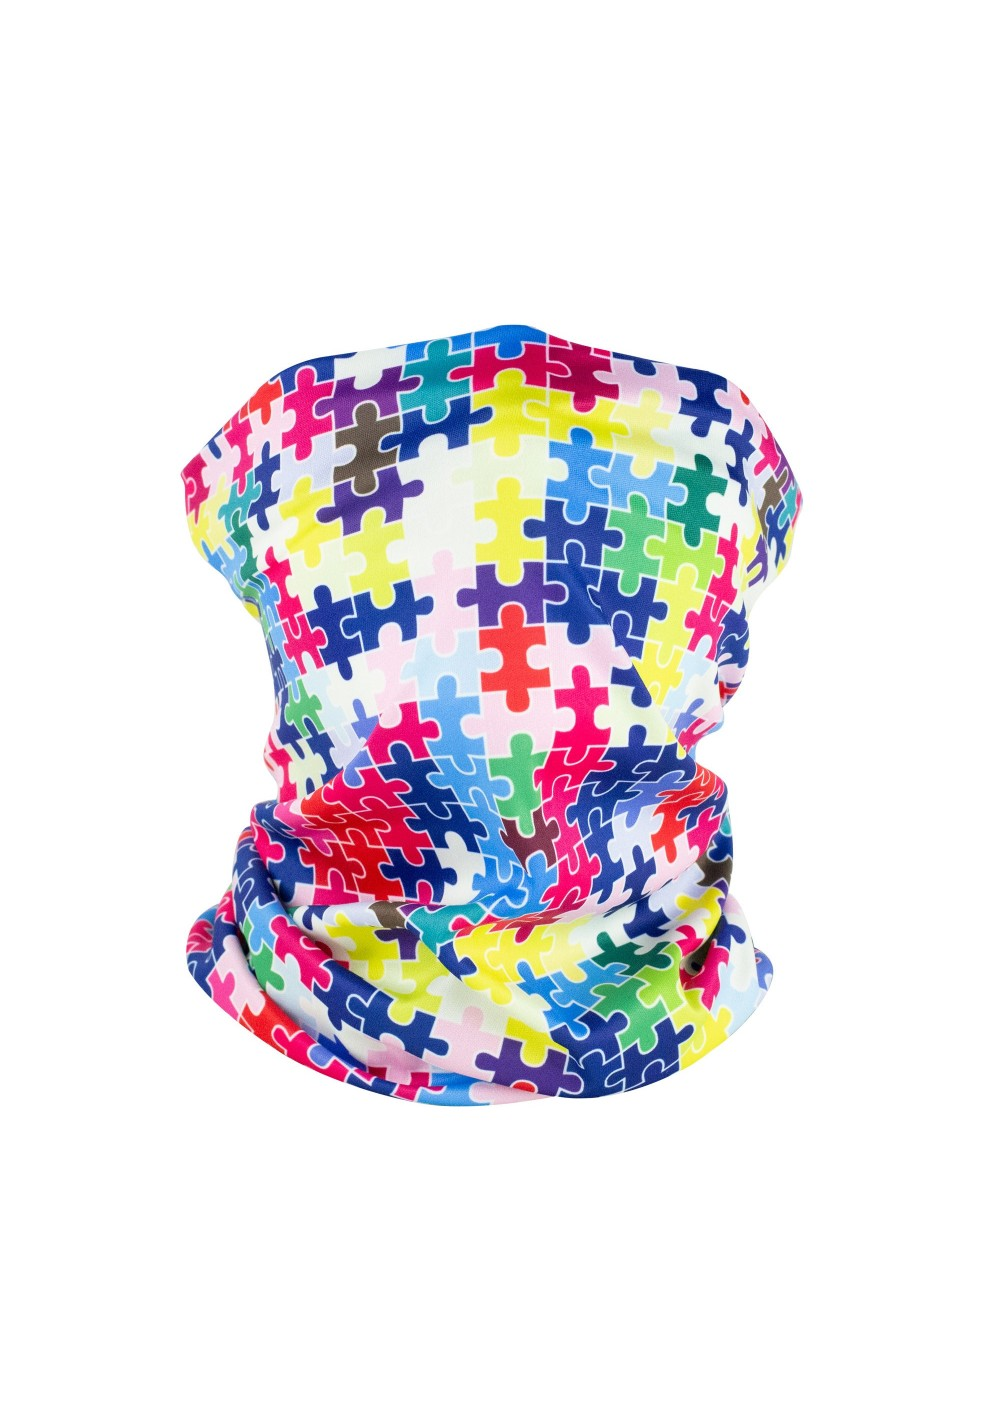 puzzle autism neck scarf gaiter face covering mask